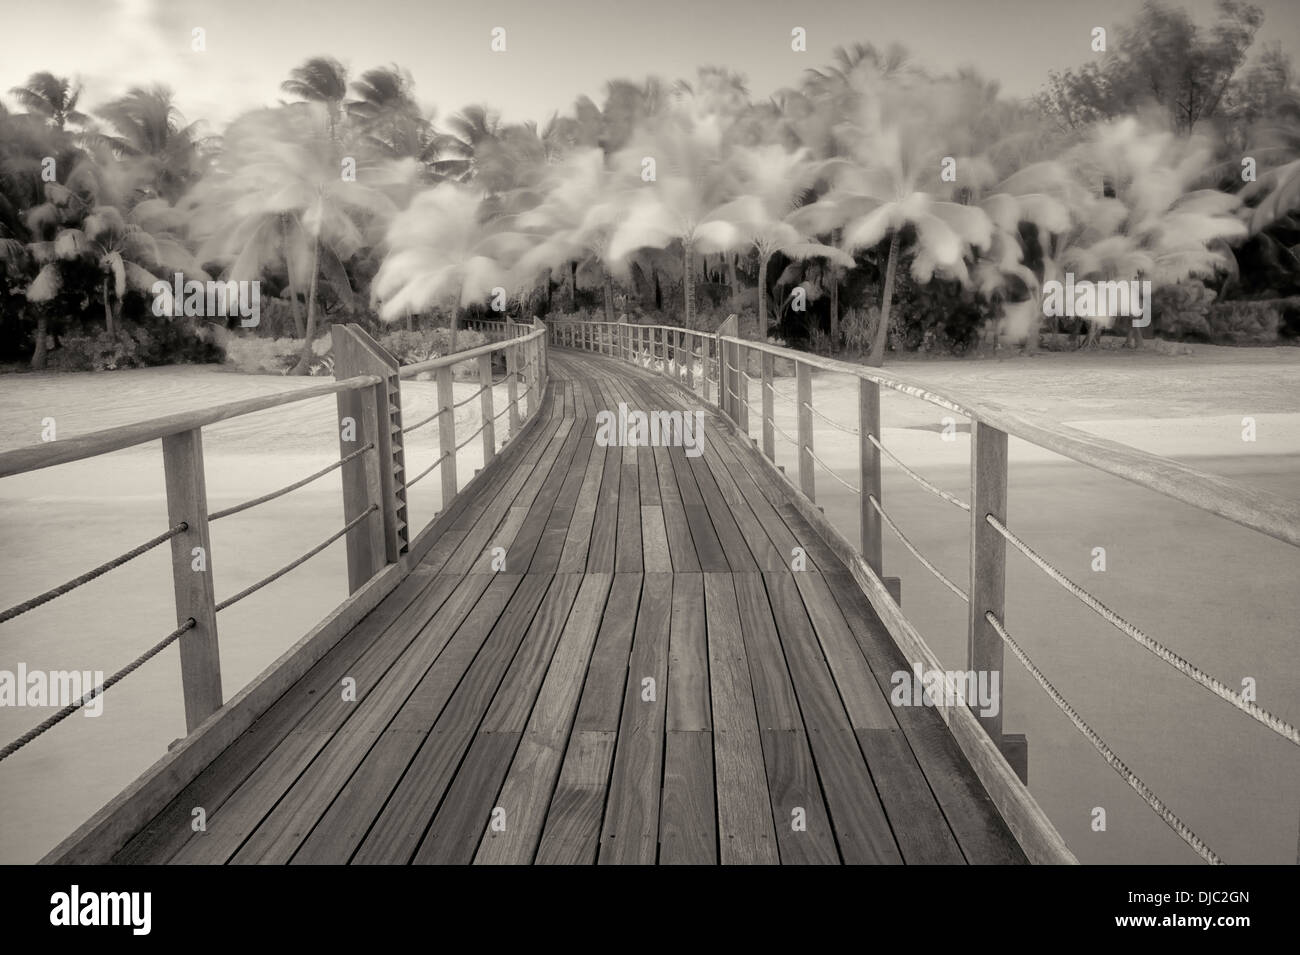 Boardwalk into palm trees blowing in the wind. French Polynesia - Stock Image